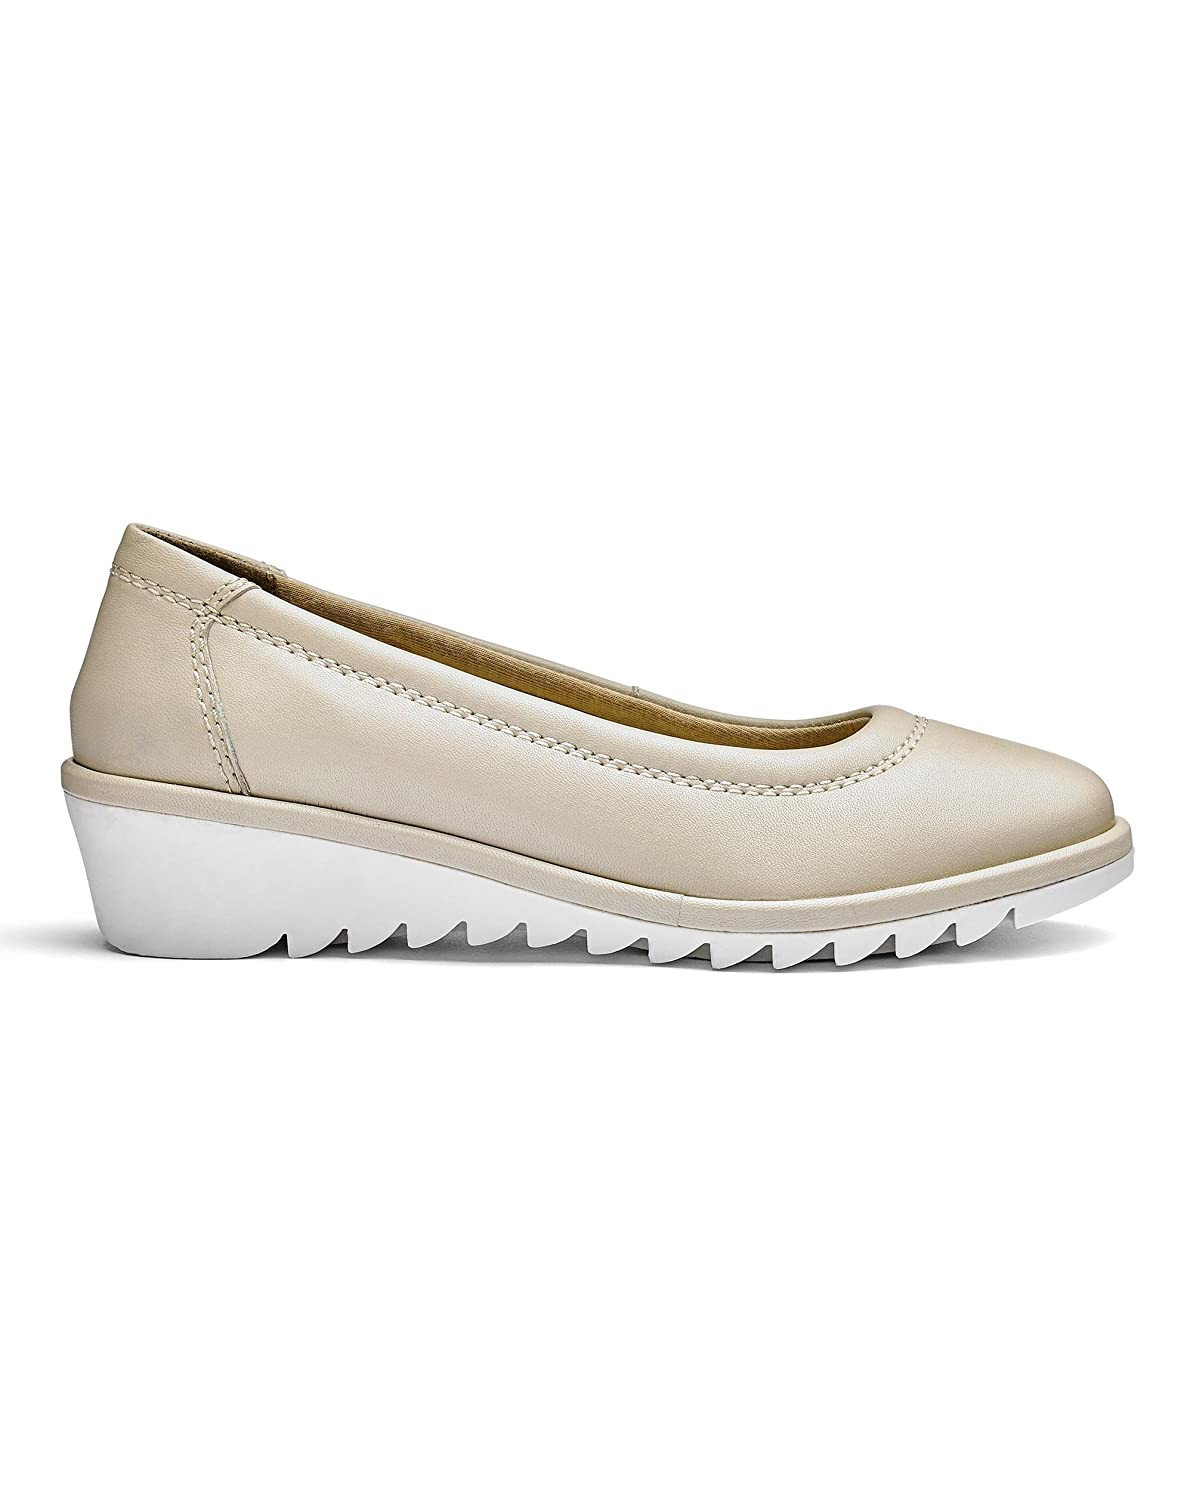 Womens Heavenly Soles Leather Ballerinas JD Williams